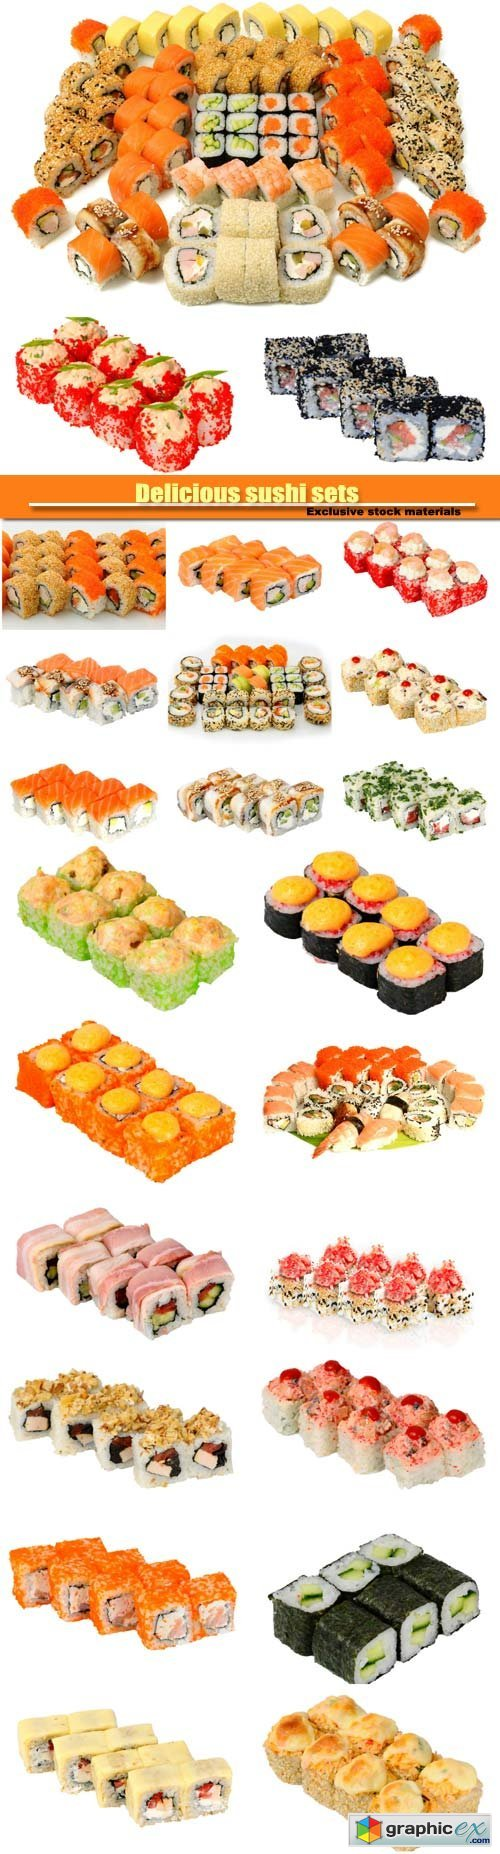 Delicious sushi sets